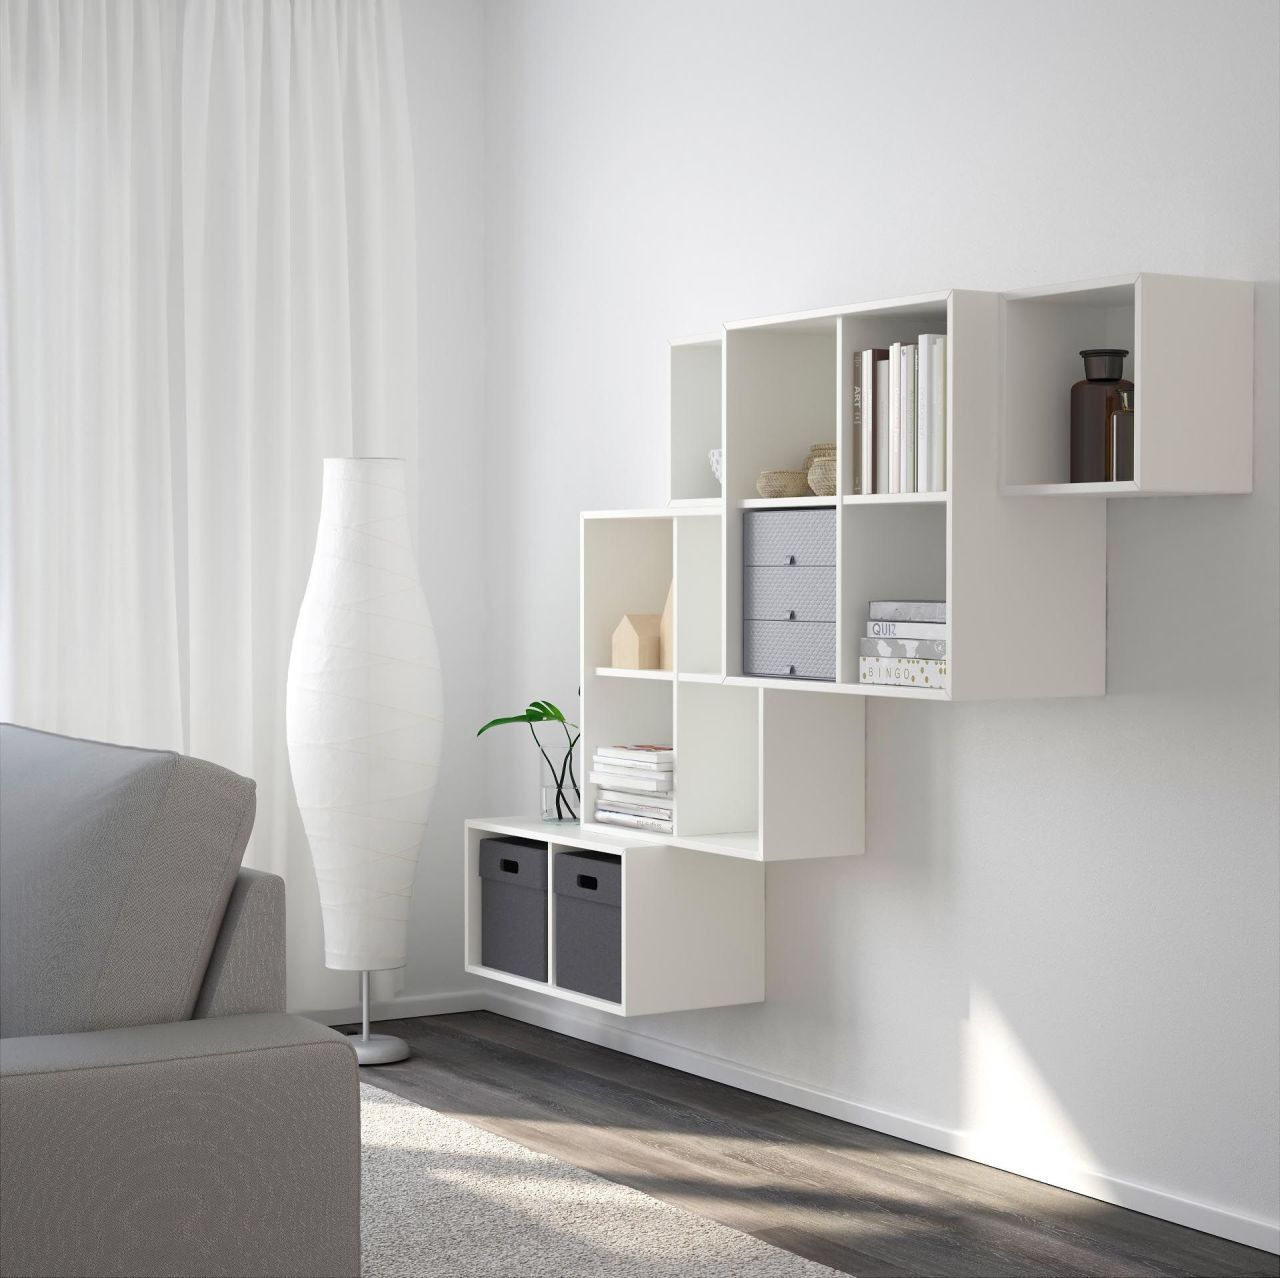 Eket Wall Mounted Cabinet If You Want Your Storage To Make A